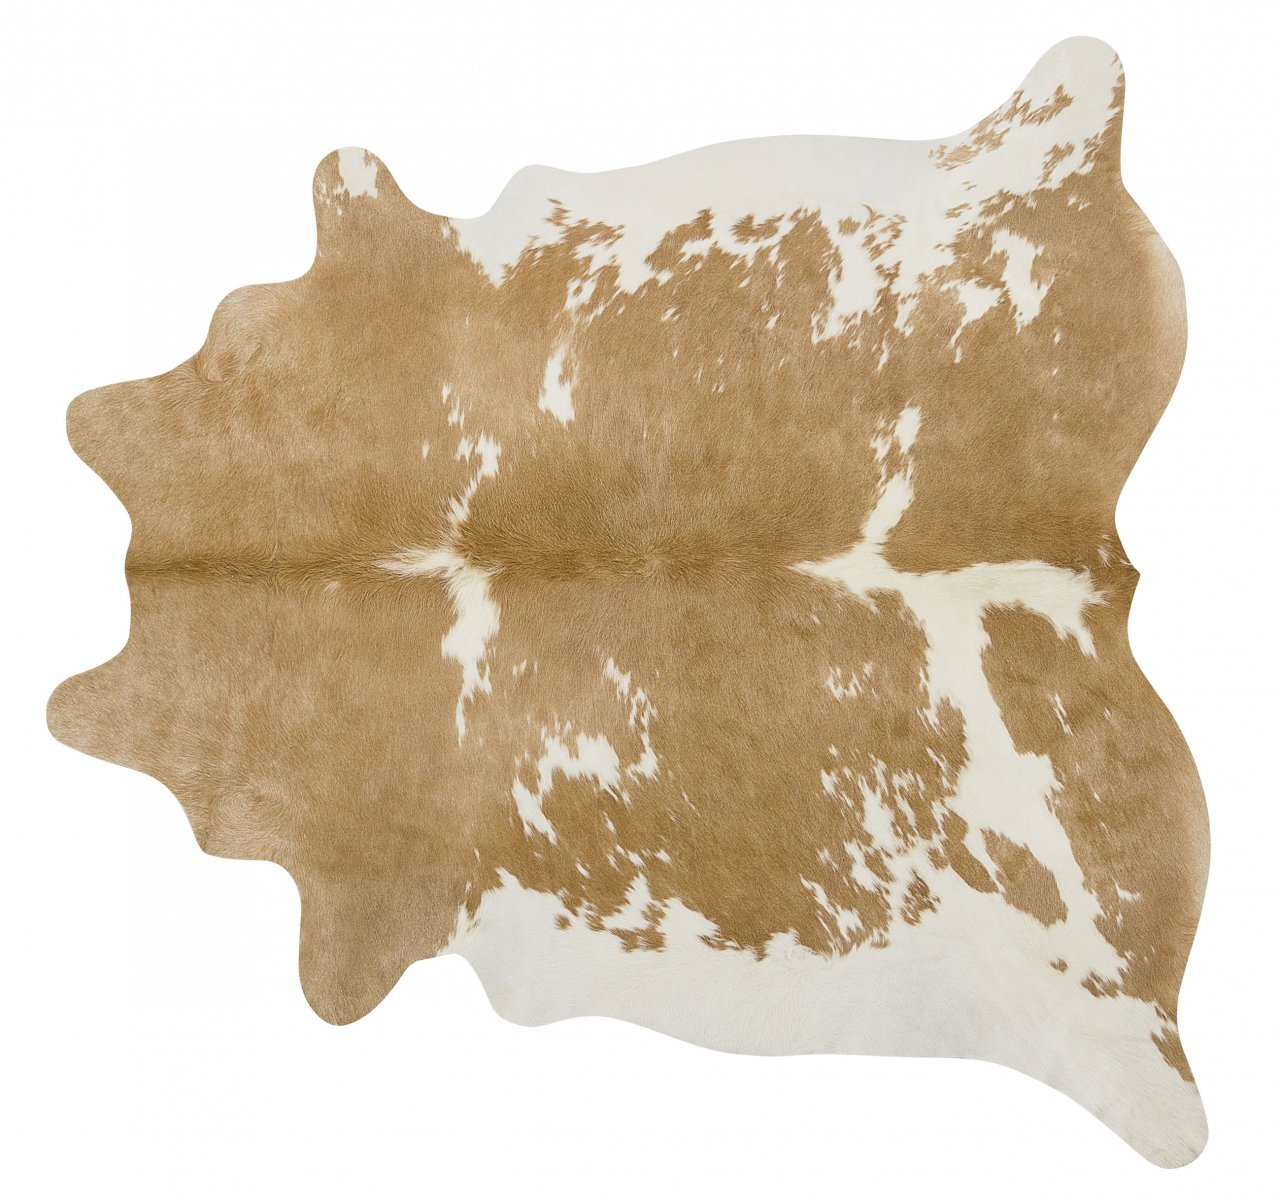 Palomino and White Brazilian Cowhide Rug Cow Hide Area Rugs - Size LARGE